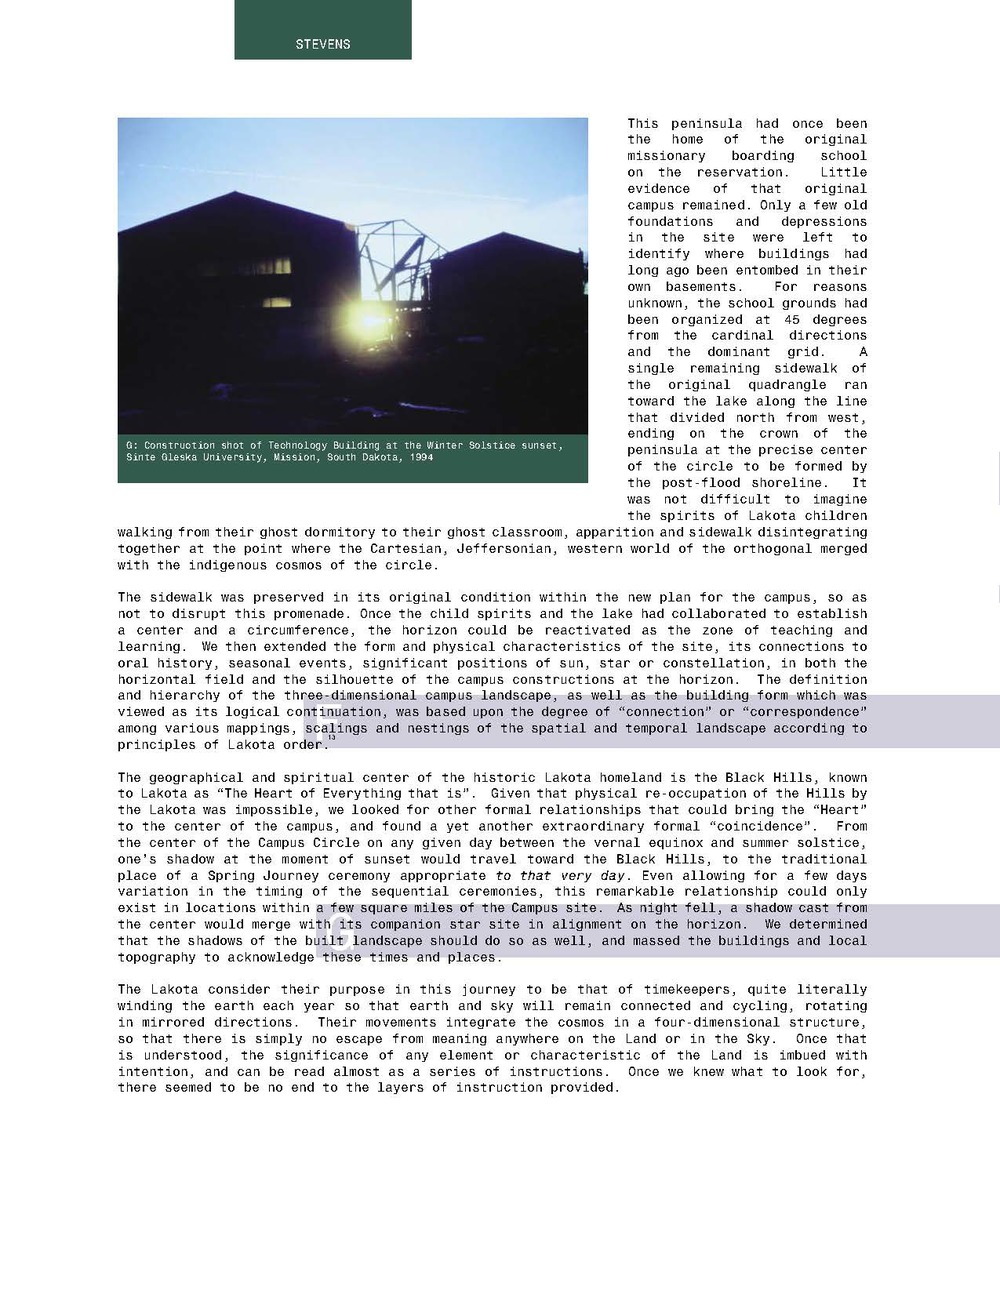 UT New West Land Co Article_Page_09.jpg